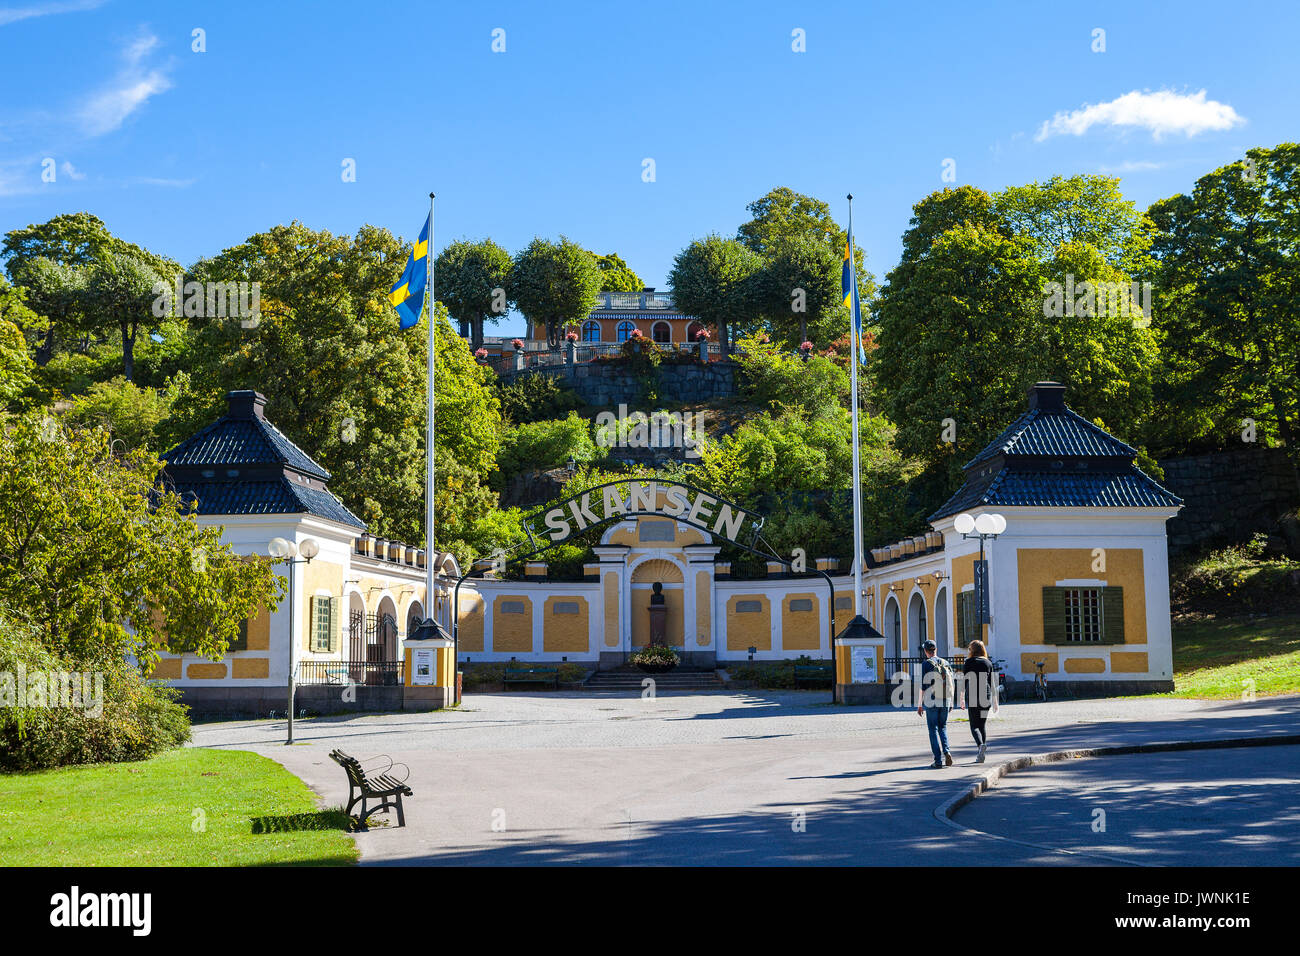 STOCKHOLM, SWEDEN - SEPTEMBER 17, 2016: Entrance to the ethnographic complex the open air museum Skansen, located on Djurgarden Island - Stock Image